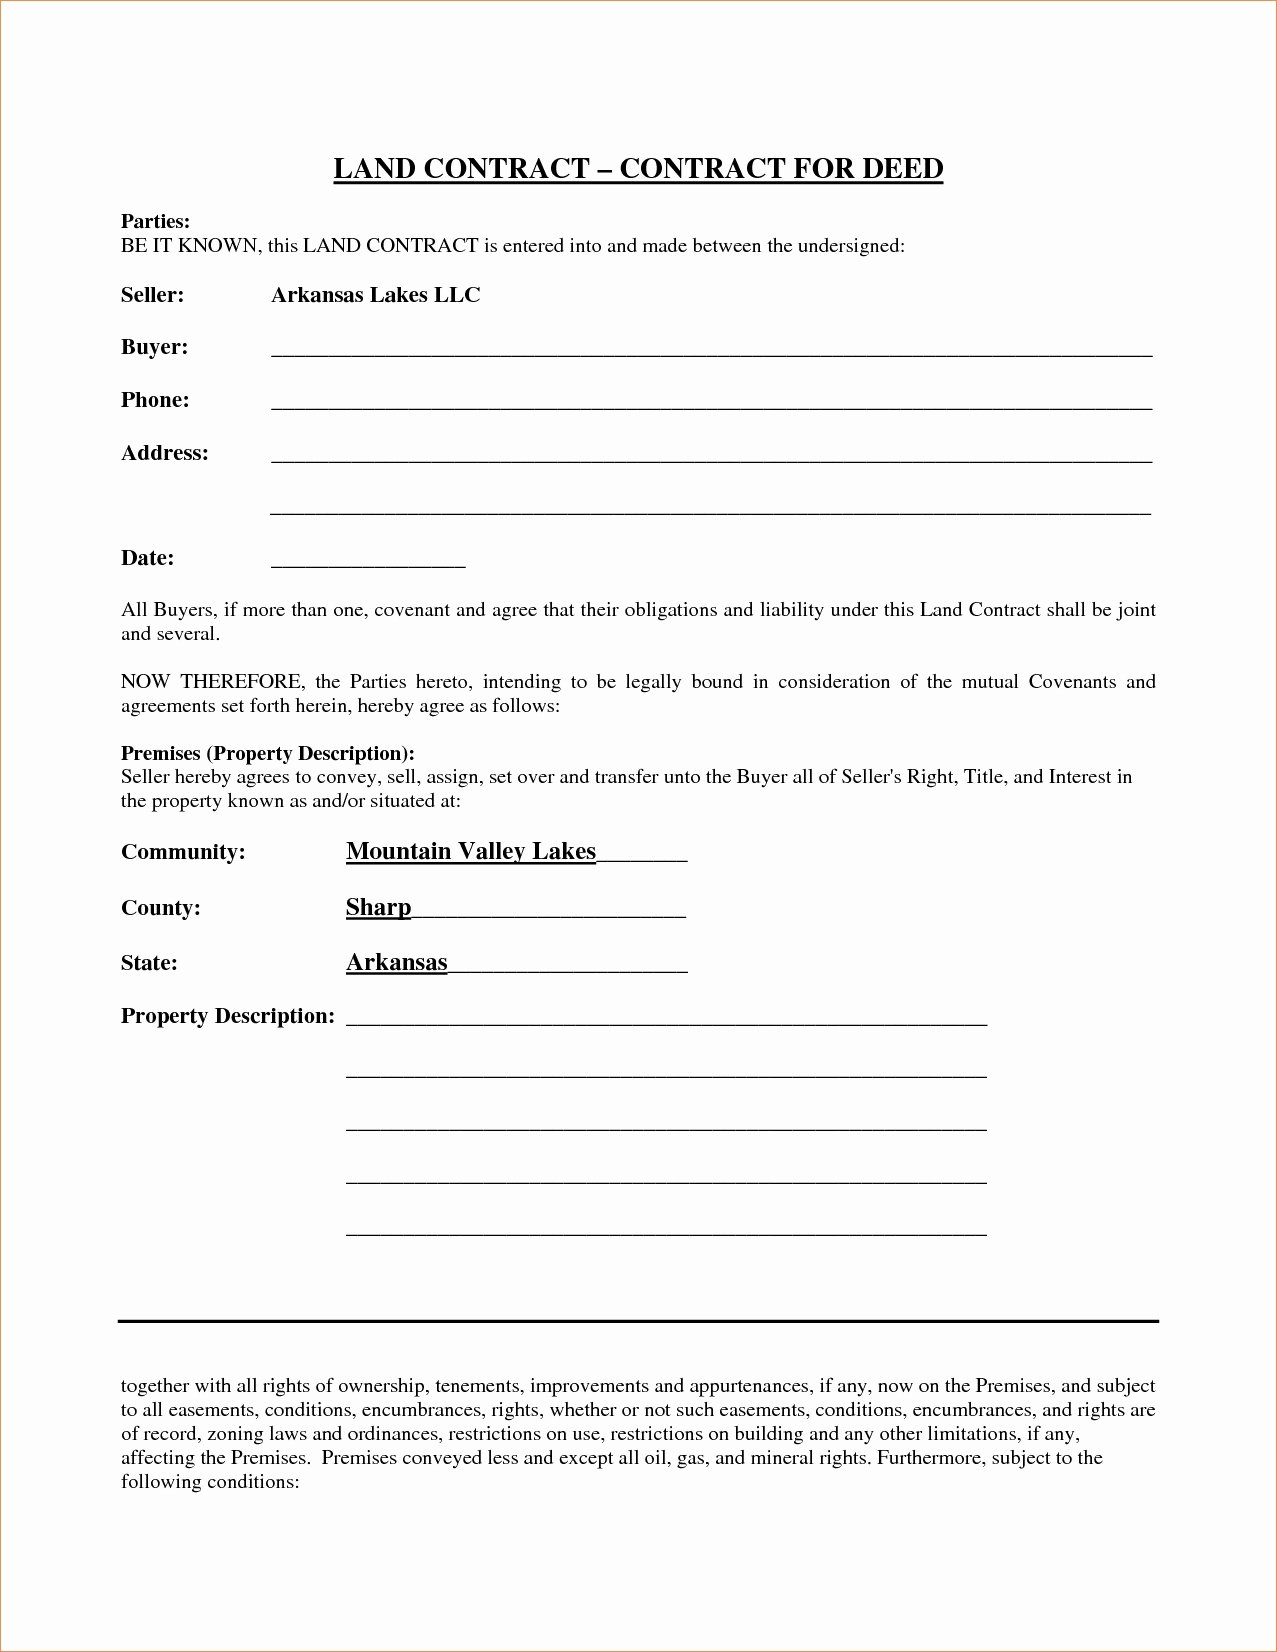 Ms Word Contract Template Unique Free Contract for Deed Template Beepmunk